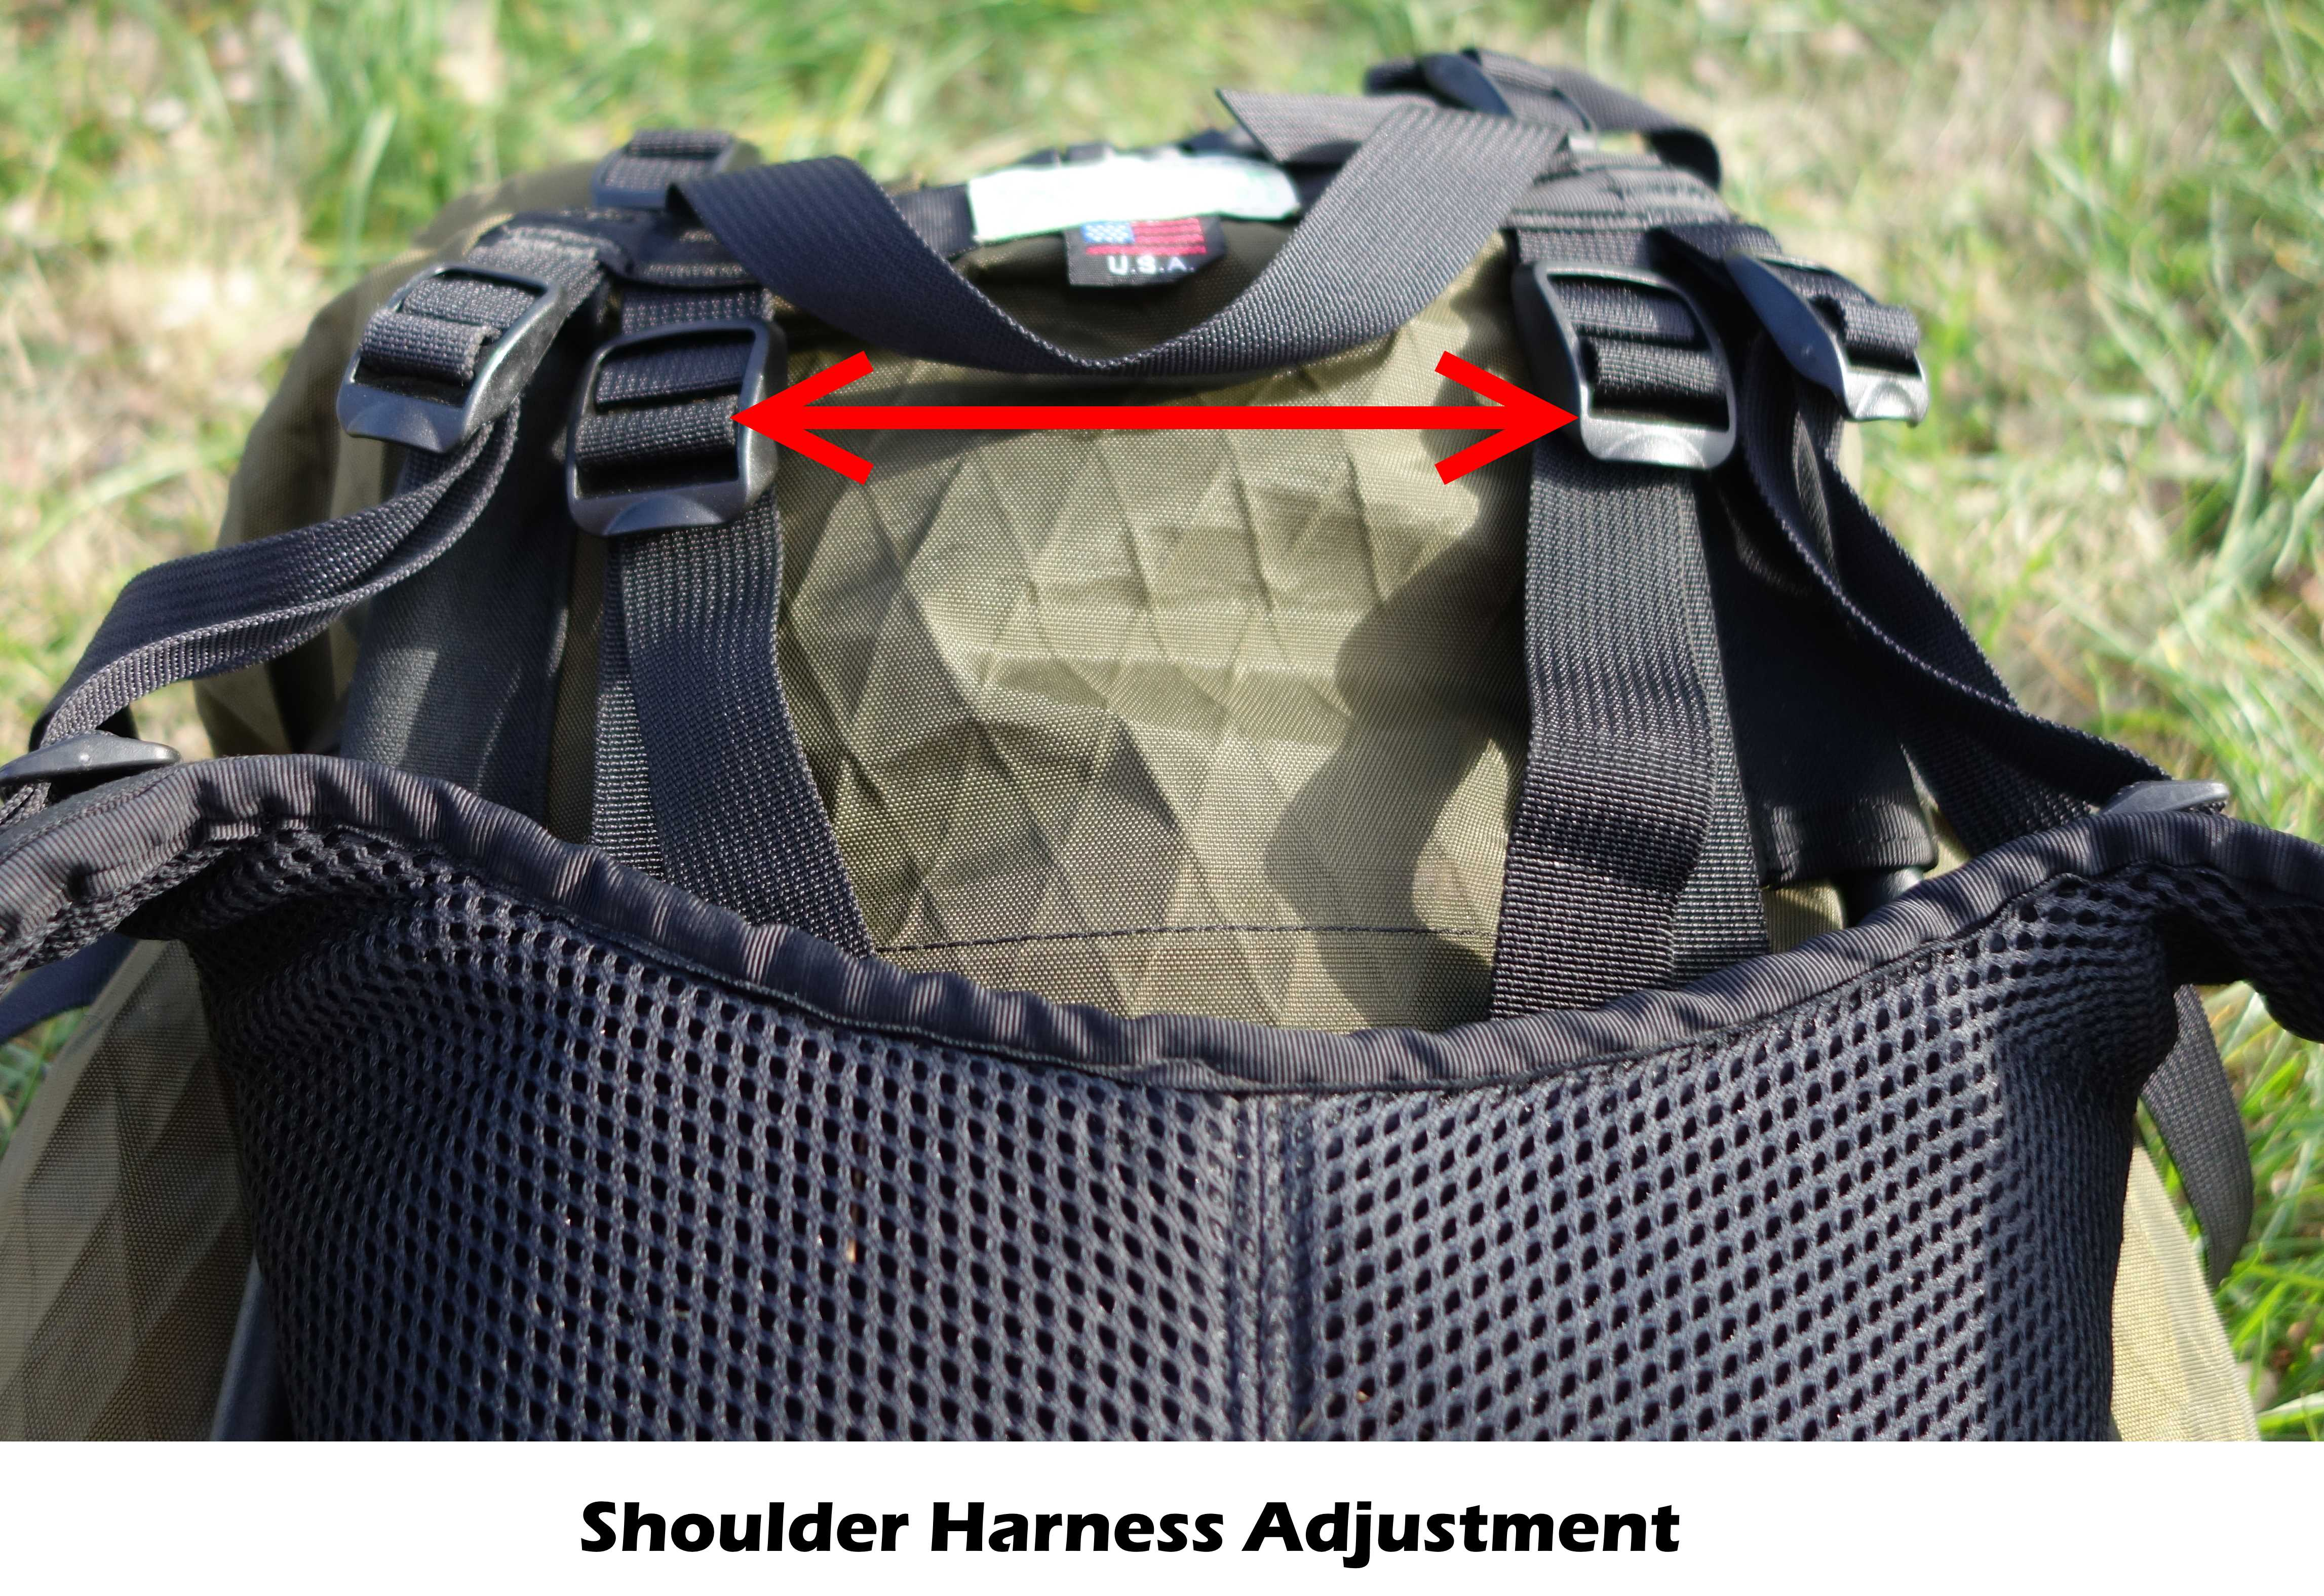 Seek Outside Divide harness adjustment